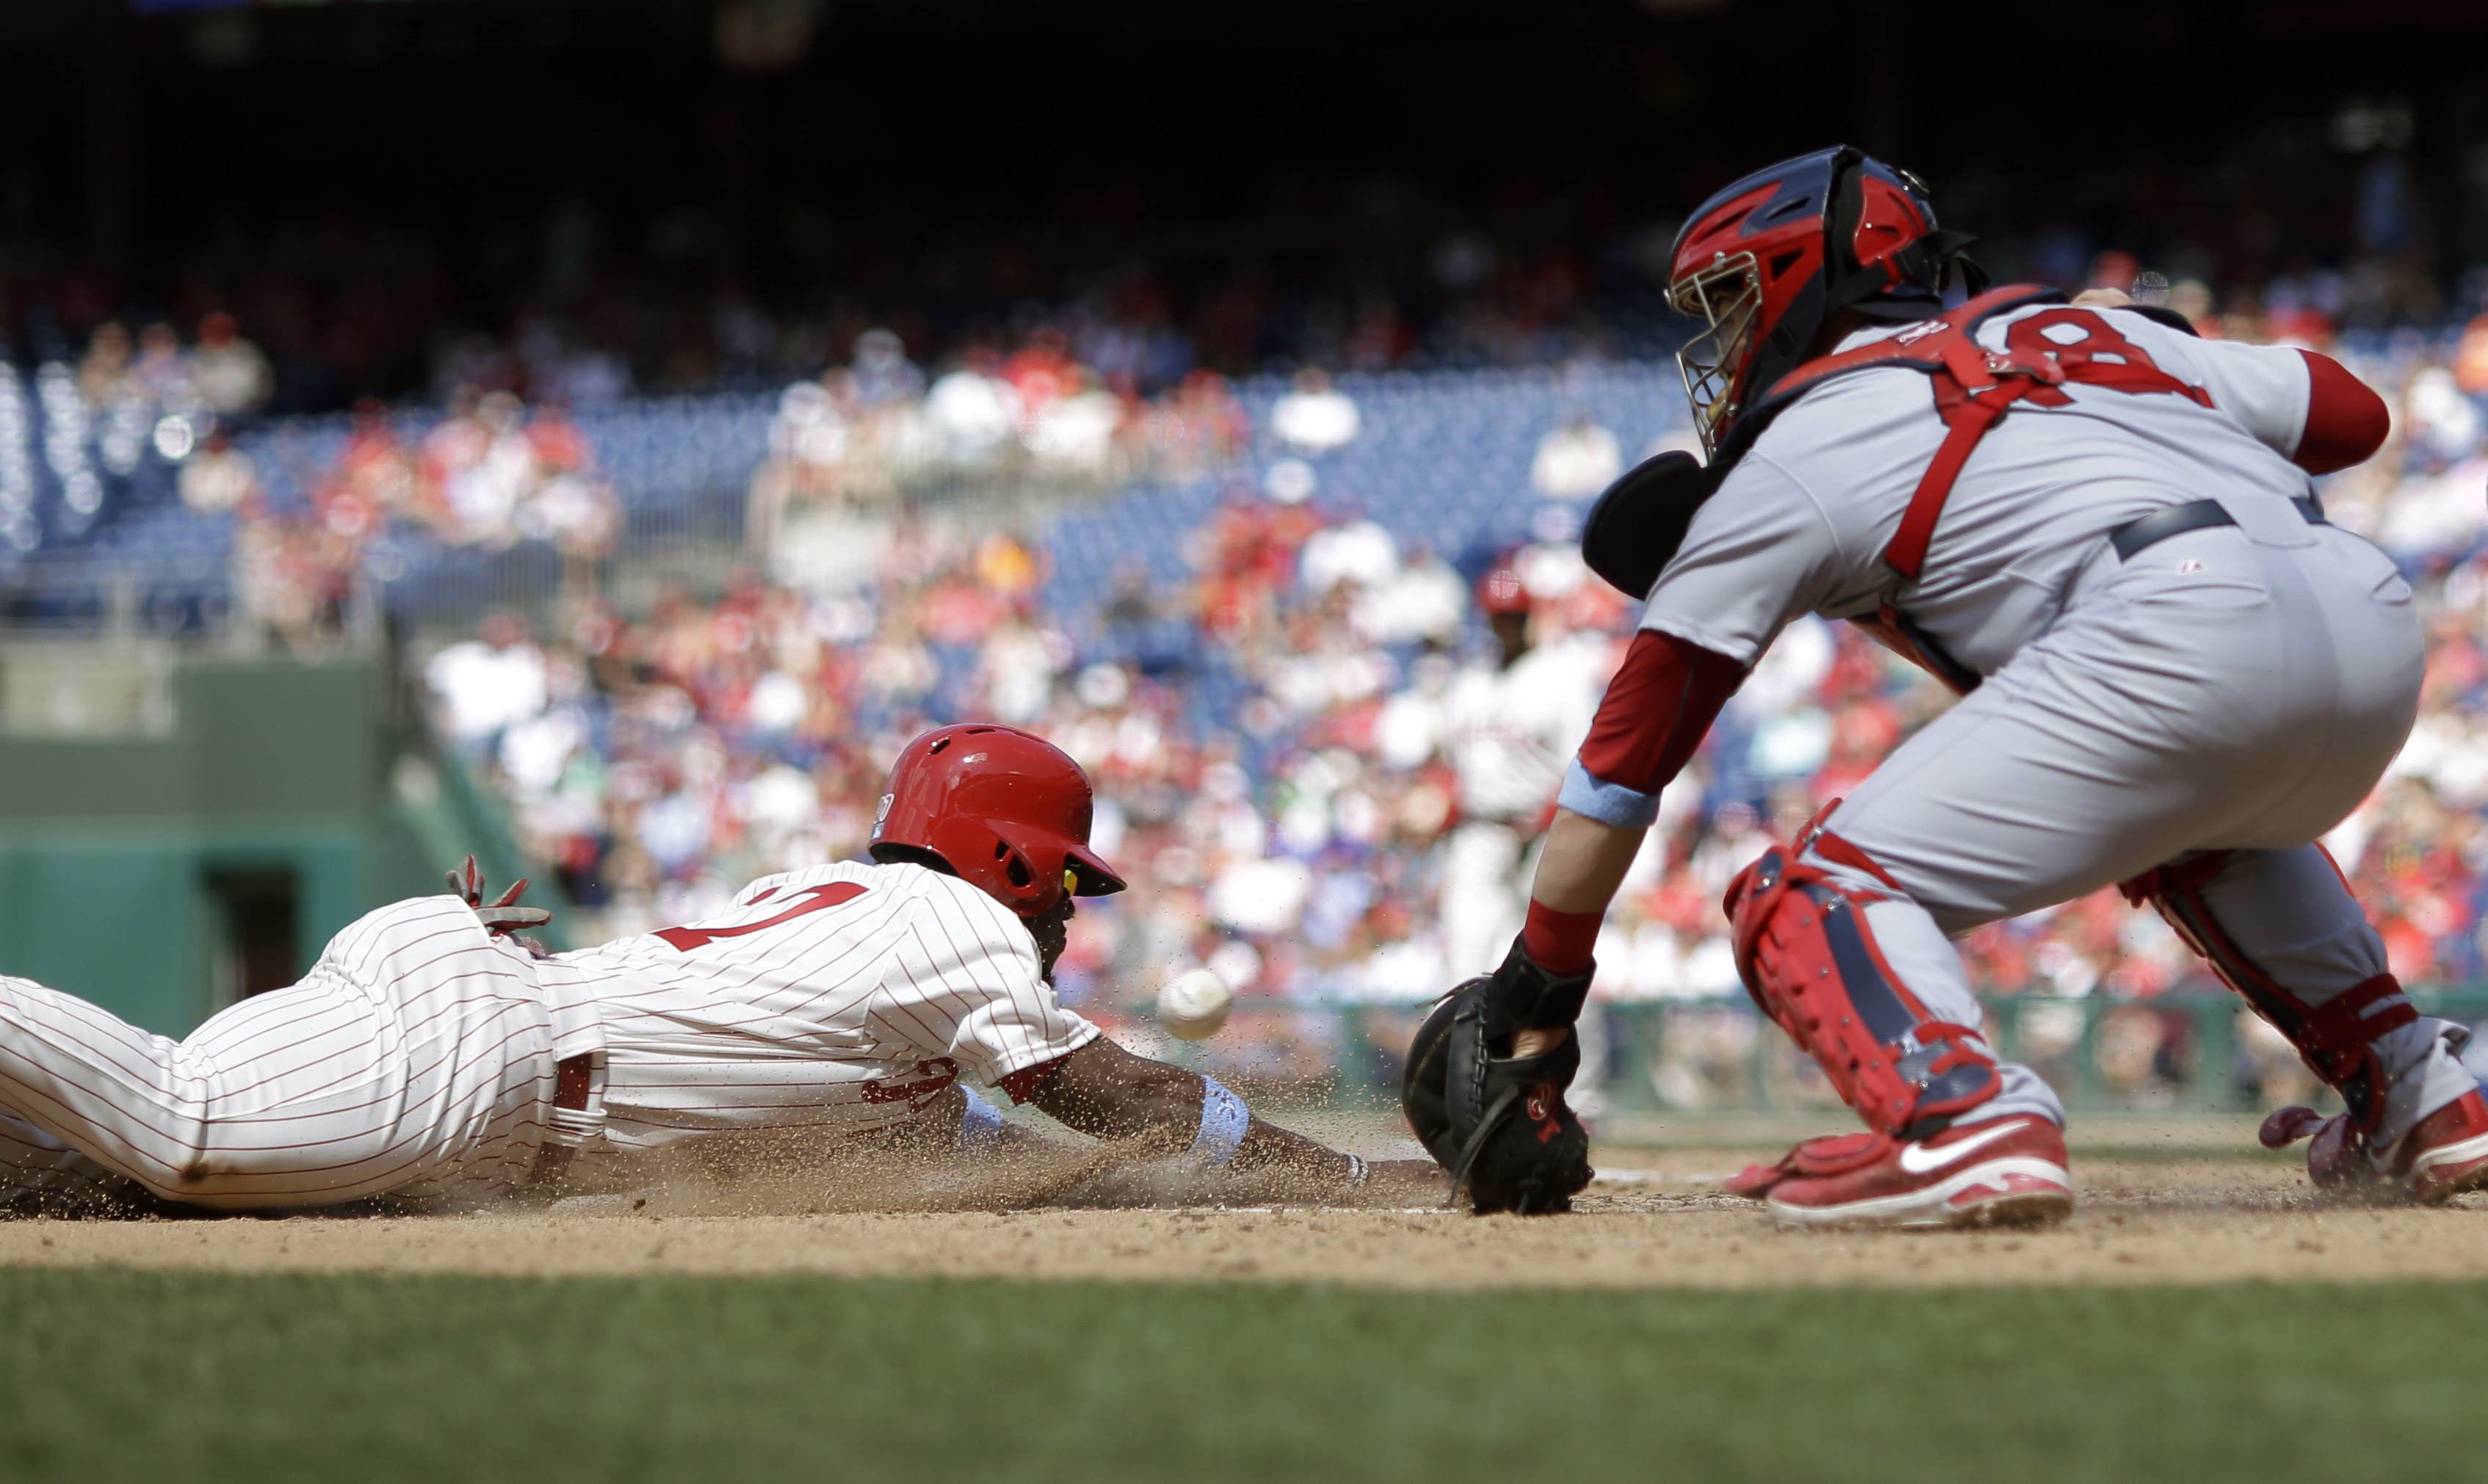 Philadelphia Phillies' Odubel Herrera, left, scores past St. Louis Cardinals catcher Tony Cruz on a single by Ben Revere during the sixth inning of a baseball game, Sunday, June 21, 2015, in Philadelphia. (AP Photo/Matt Slocum)